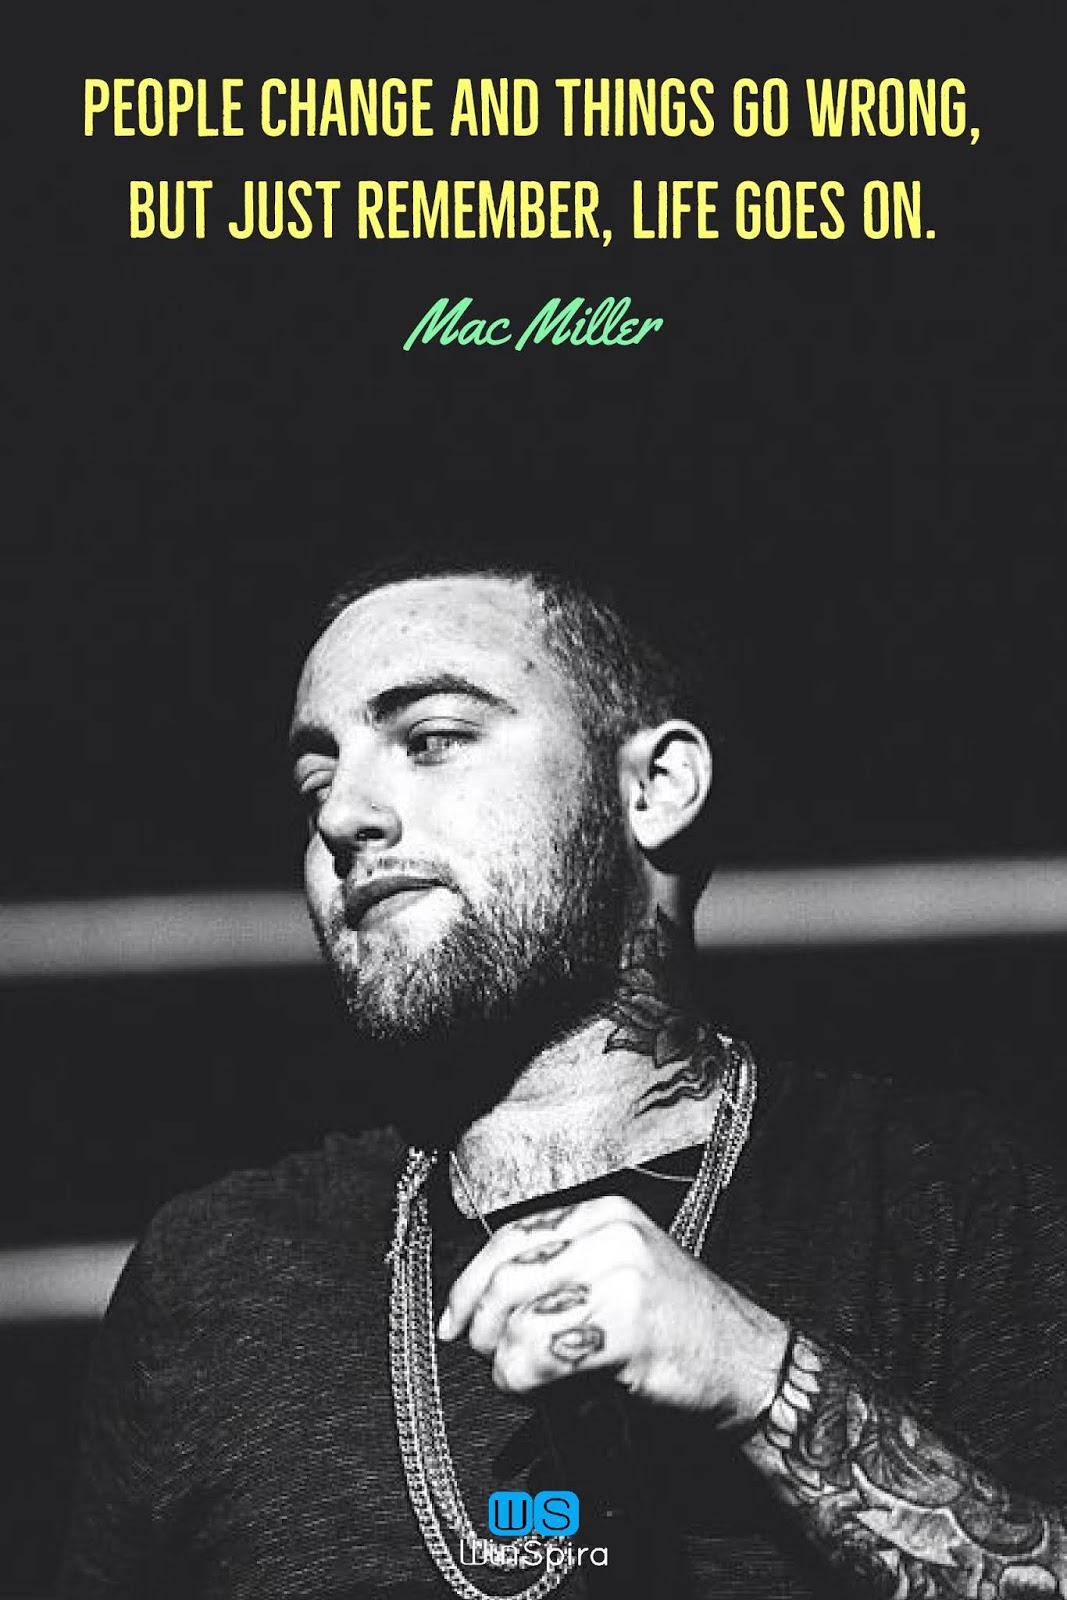 Mac Miller Quotes 22 Inspirational and motivational Mac Miller quotes   Winspira Mac Miller Quotes